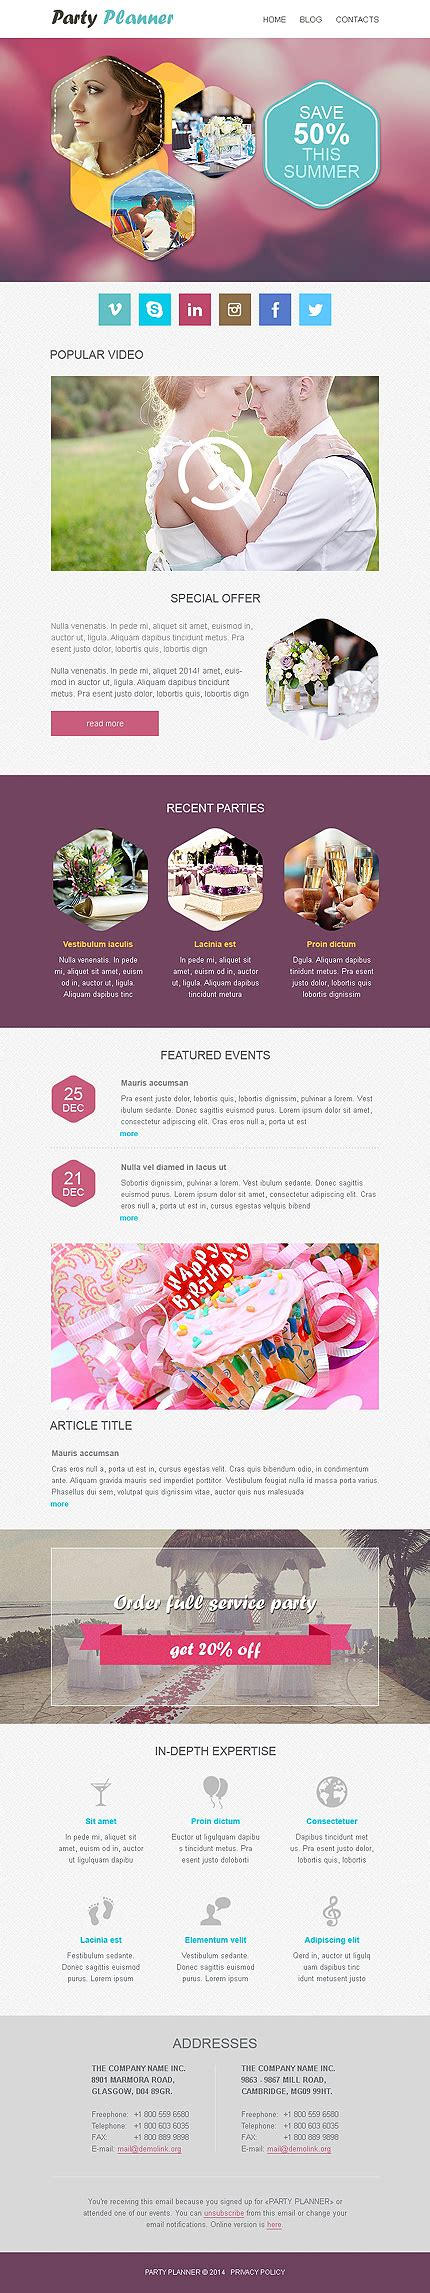 Responsive Newsletter Templates For Effective Email Marketing Entheos Effective Newsletter Templates